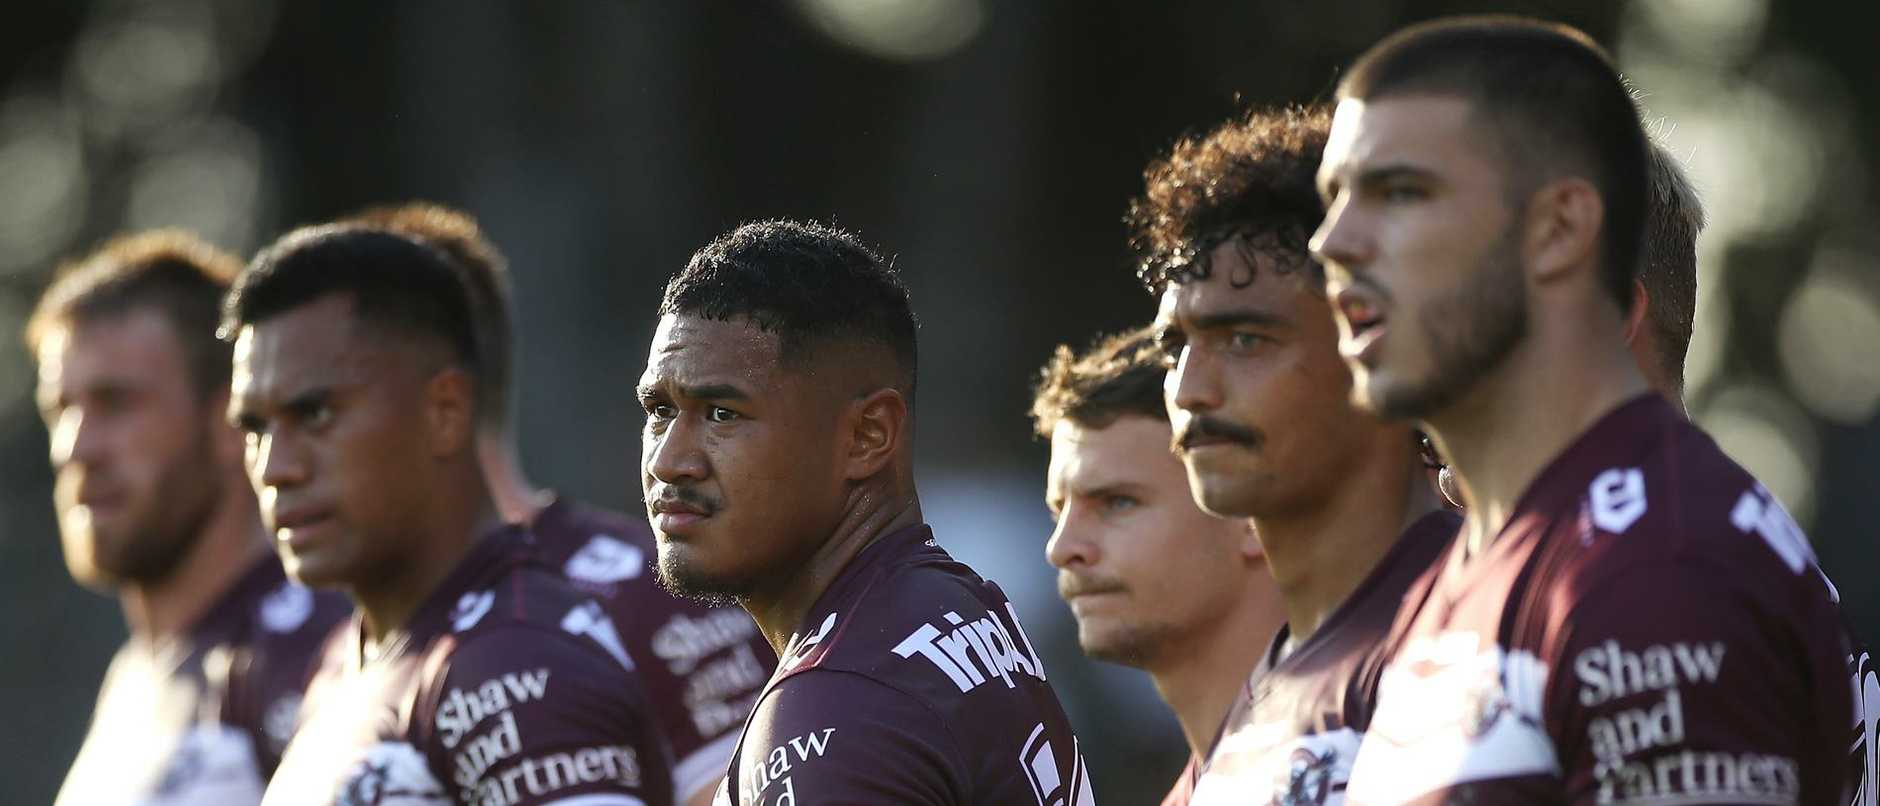 NRL stars have formally expressed 'frustration' at rugby league's new rule changes, claiming the laws were pushed through without in-depth consultation.